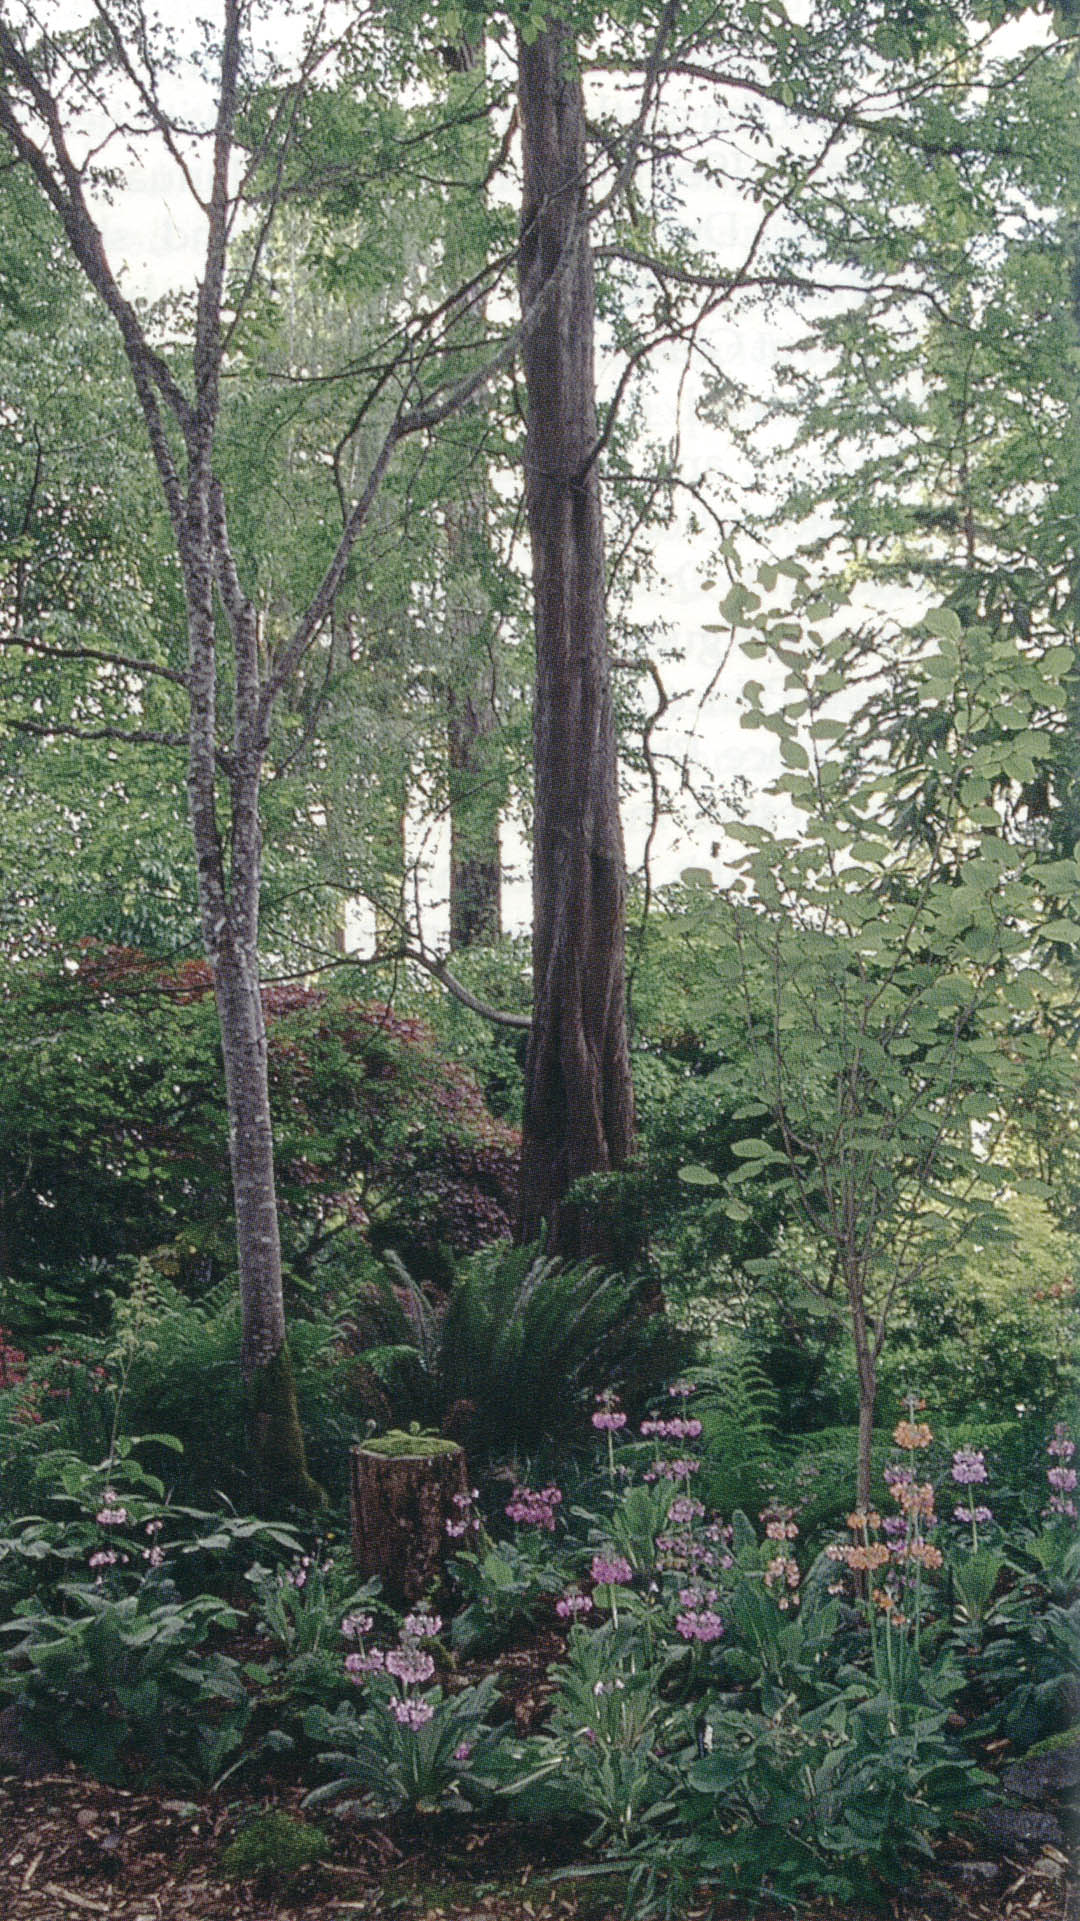 Pacific Horticulture Society | Open for Viewing… Vancouver Island ...